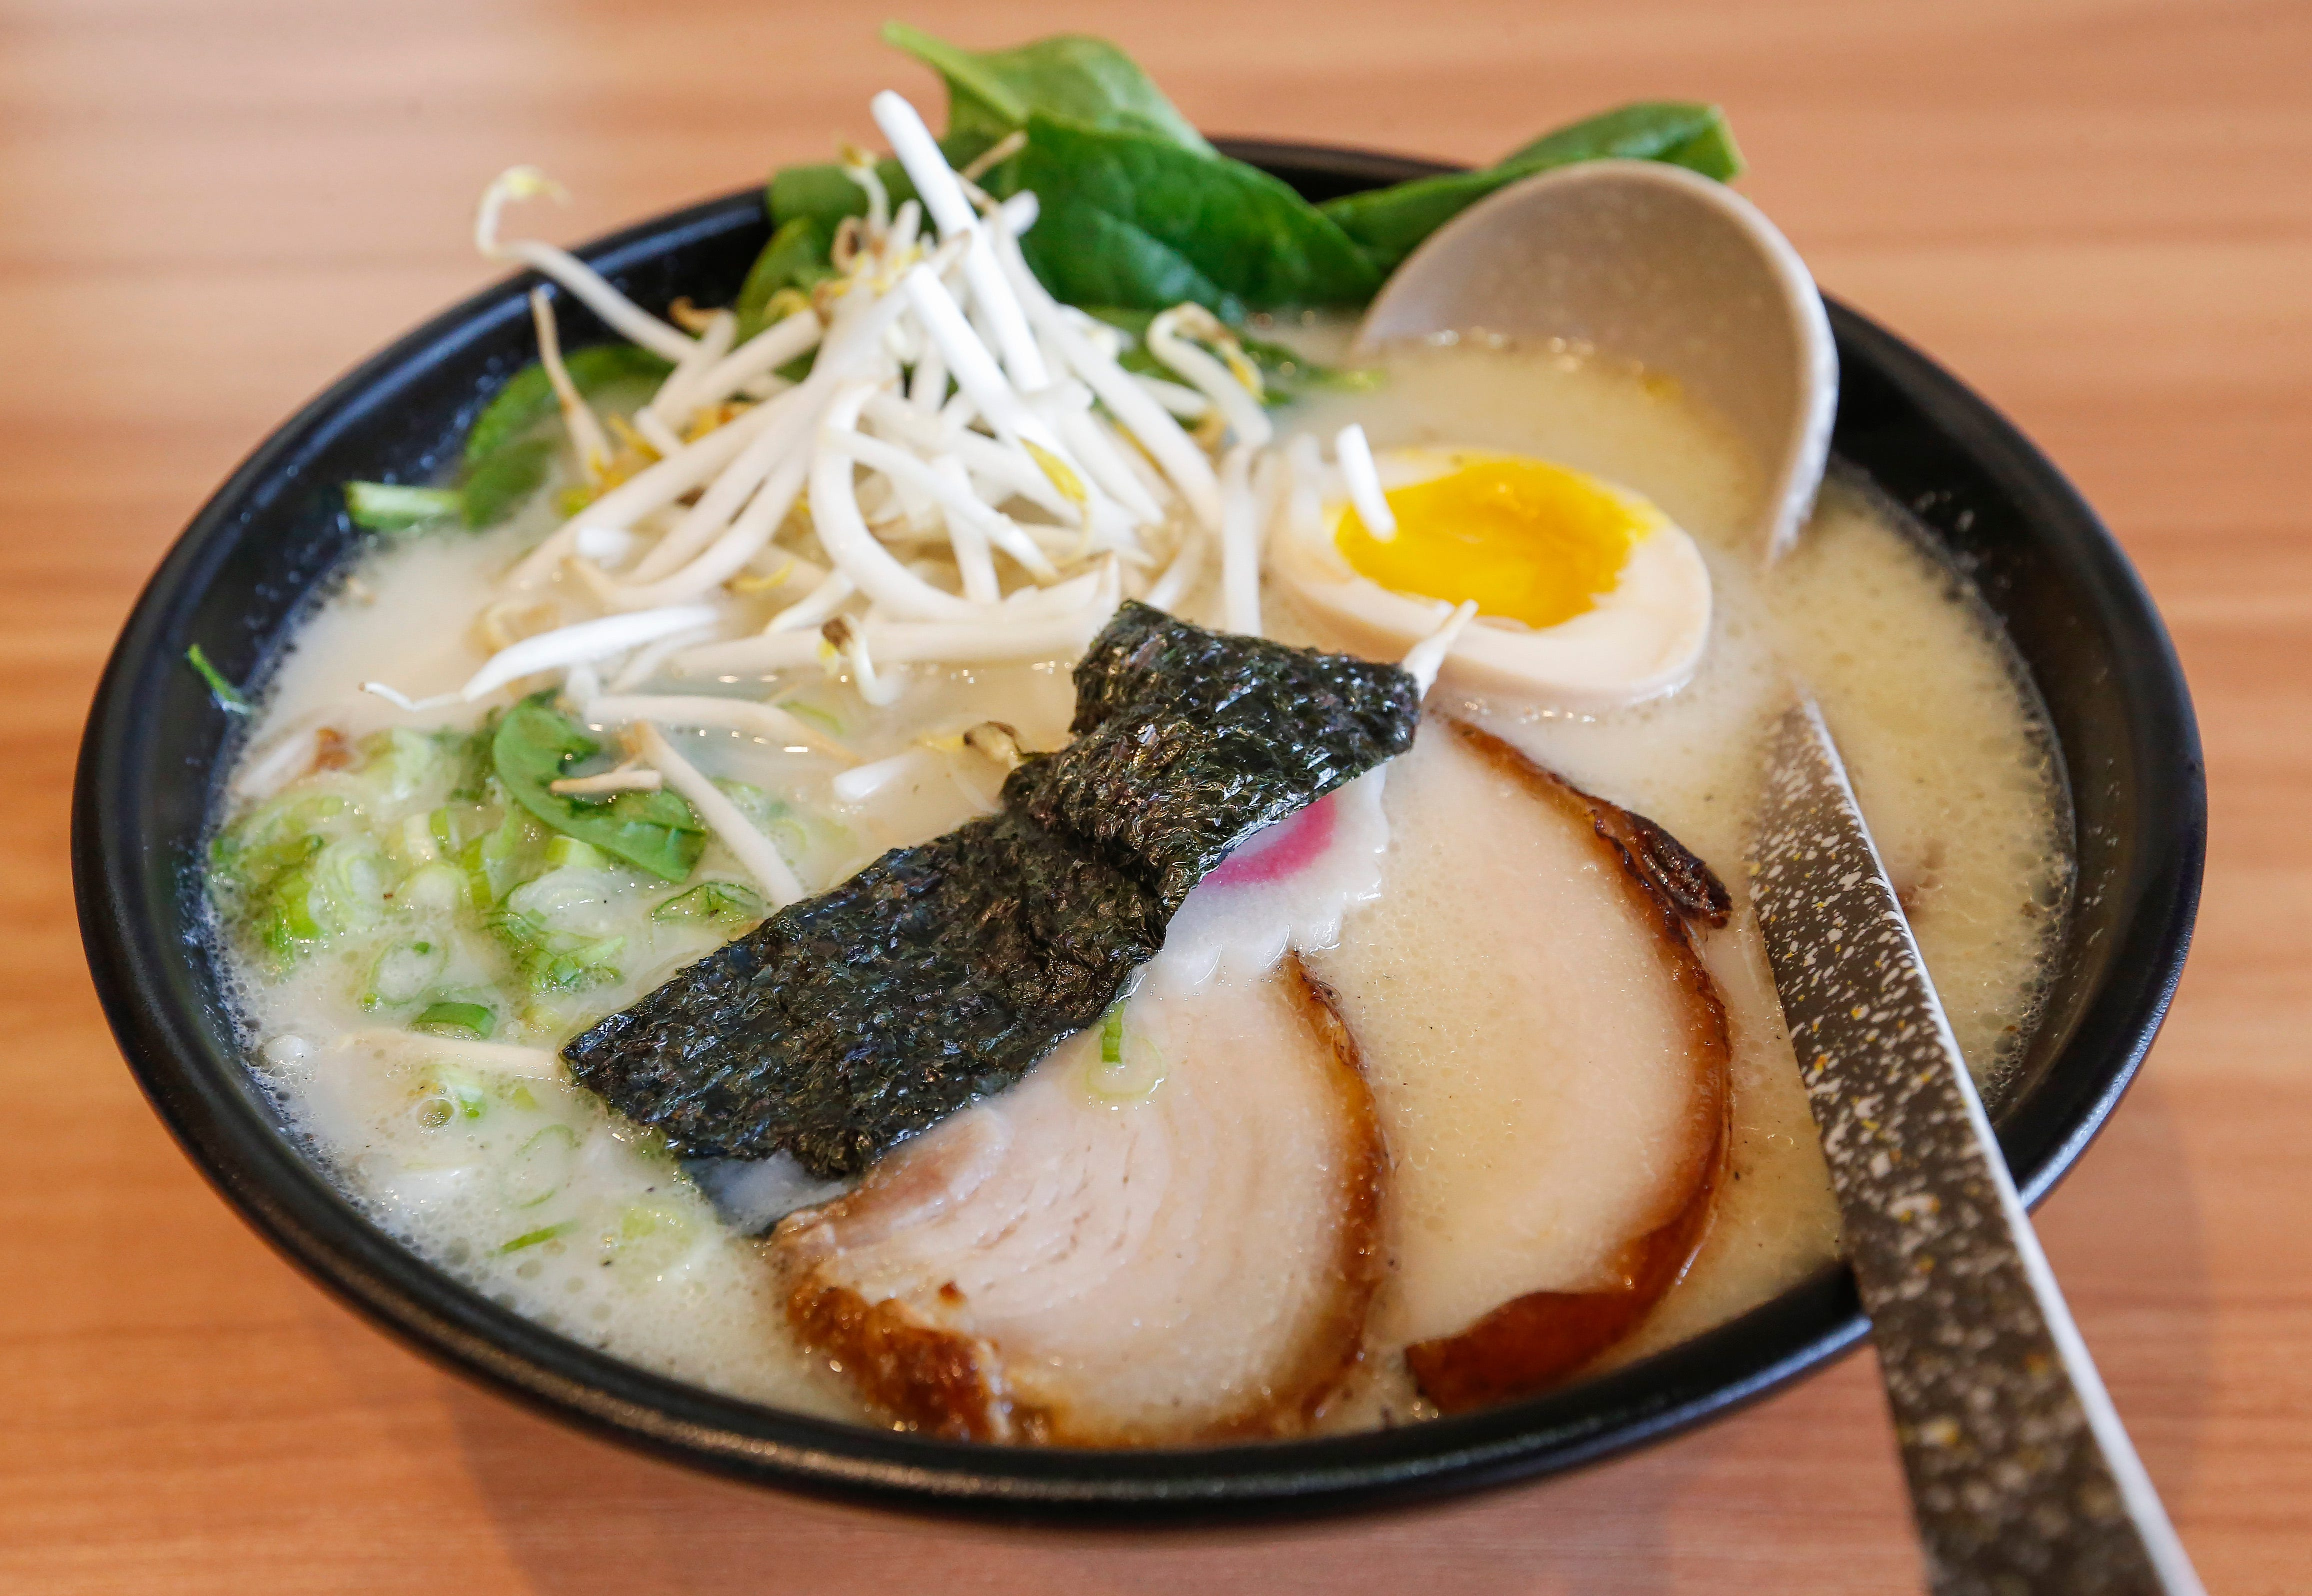 The pork ramen at Kuma Japanese Ramen & Sushi, which is located at 3405 E. Battlefield Road.